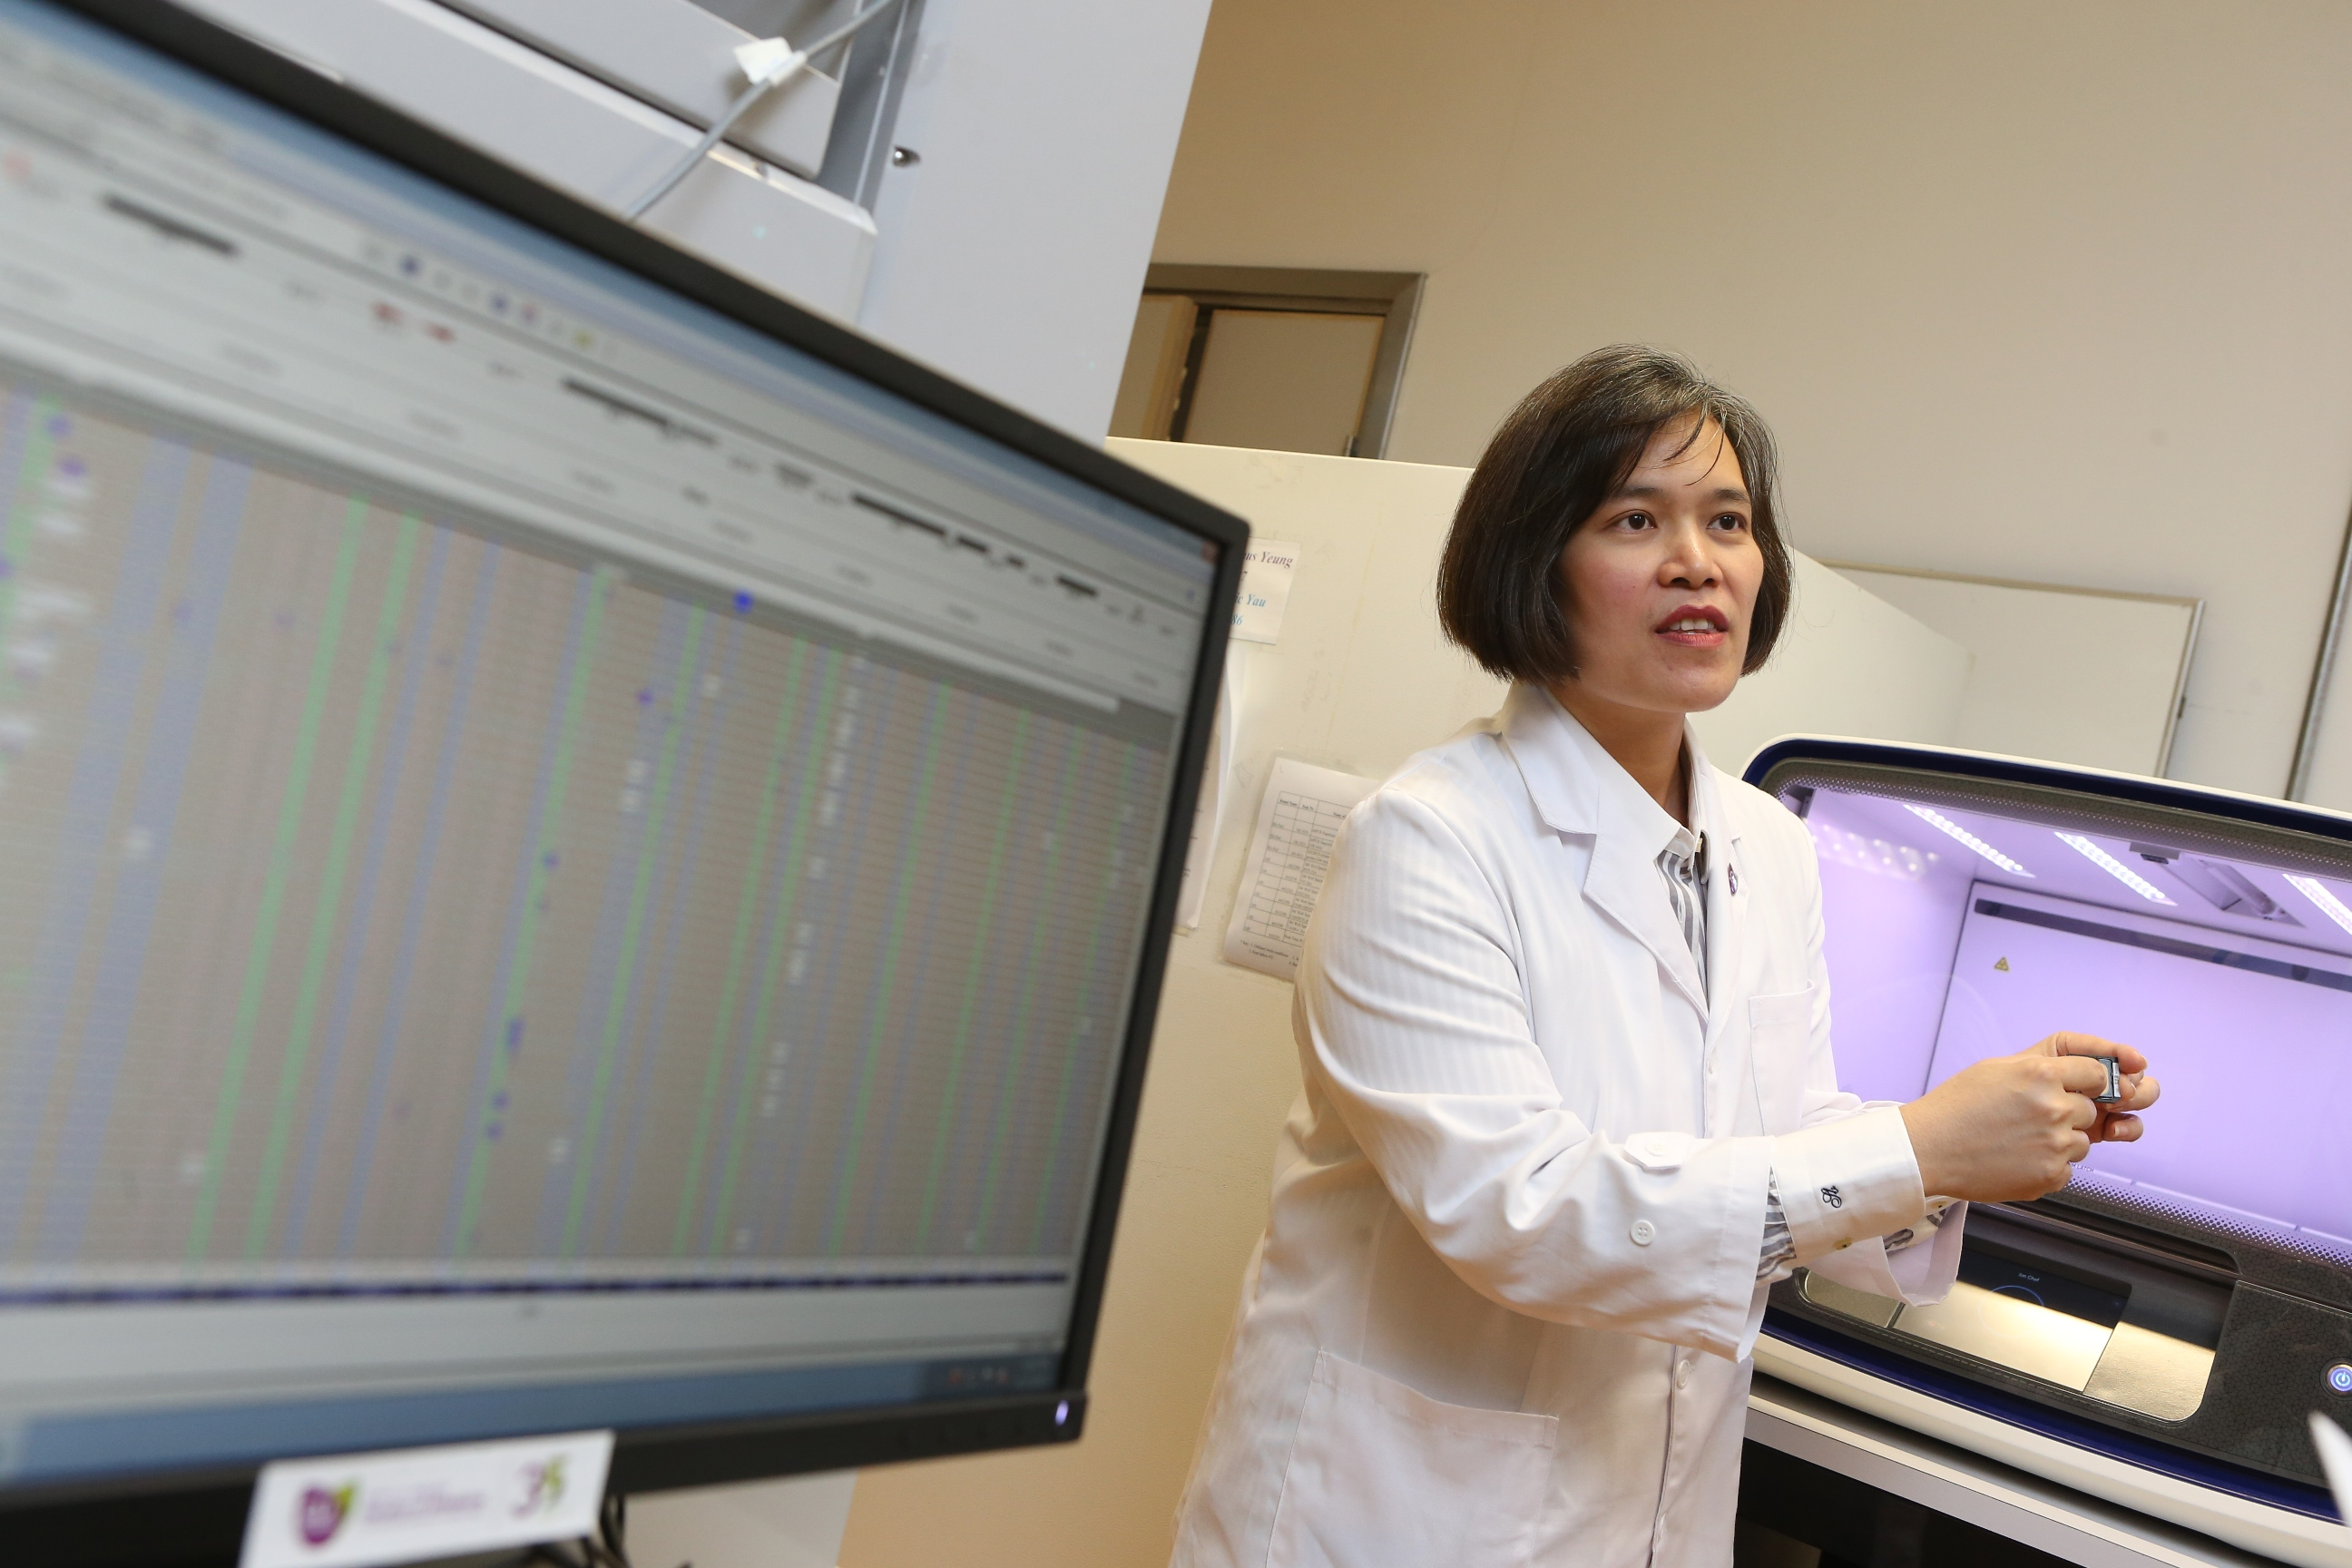 Professor LUI wants to promote the use of multi-gene pharmacogenomics analysis for Hong Kong ovarian cancer patients to help identify tumour DNA events that may guide precise drug choice efficiently.